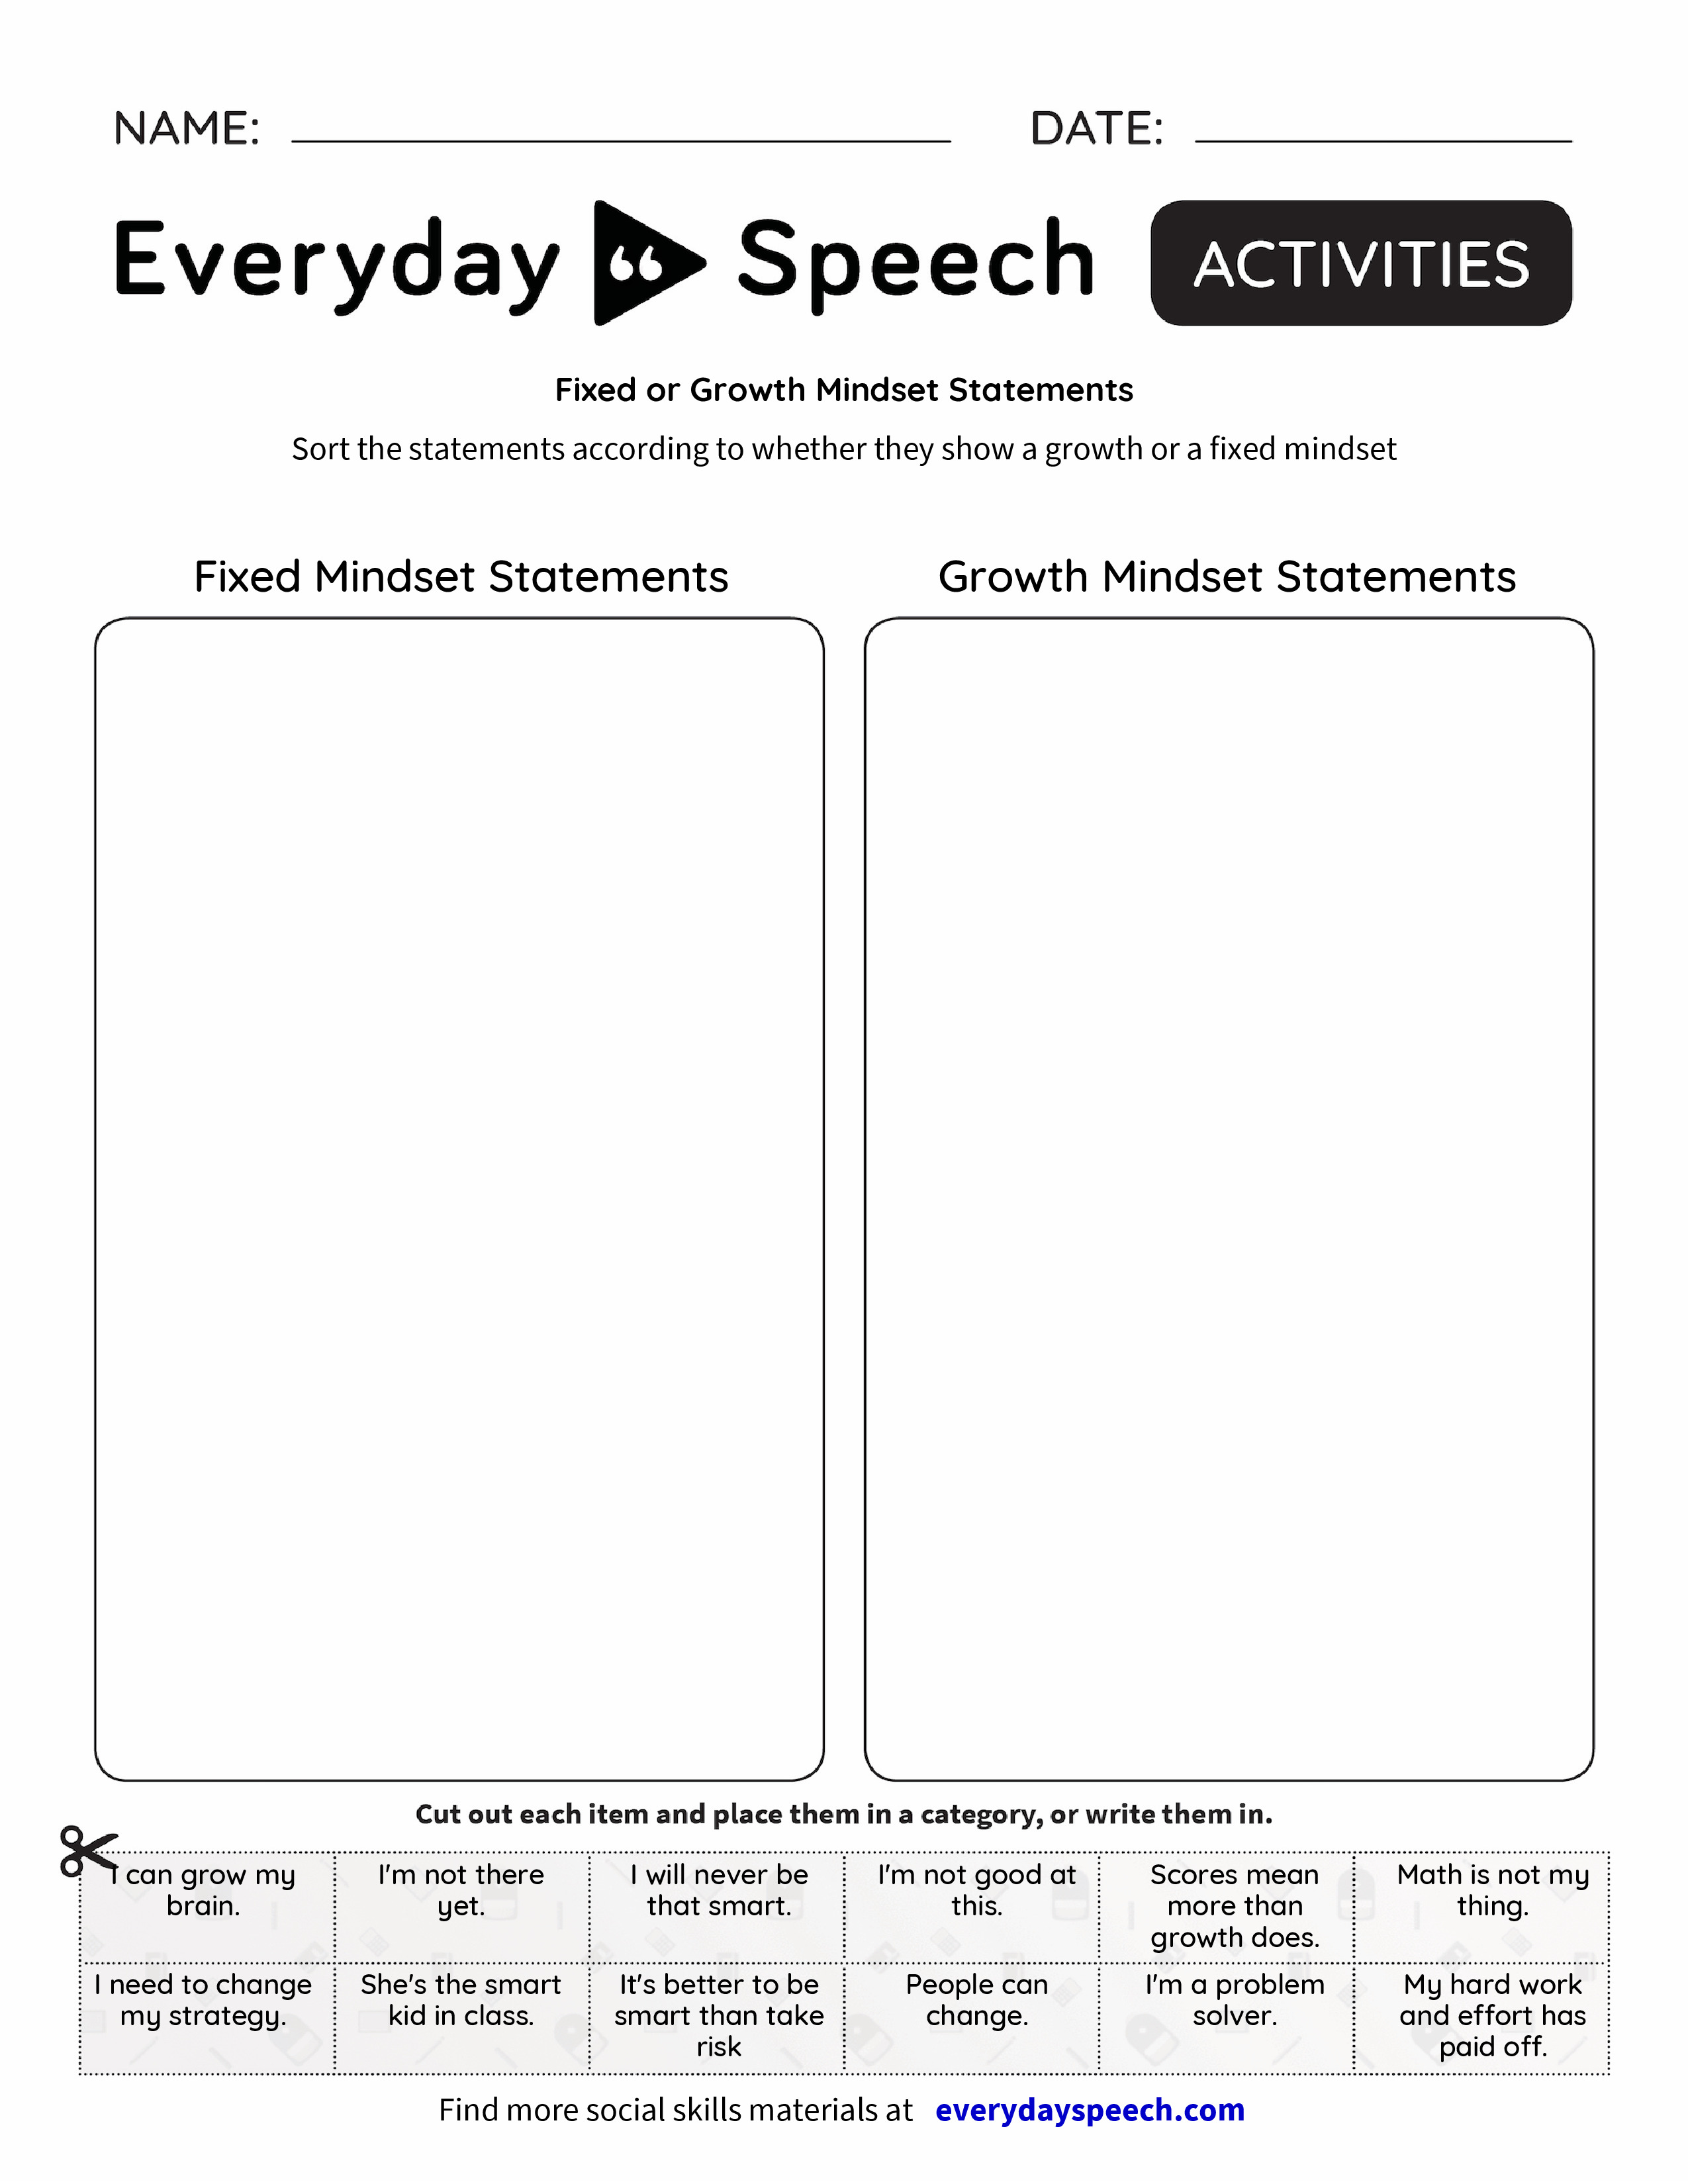 worksheet Growth Mindset Worksheet fixed or growth mindset statements everyday speech preview preview